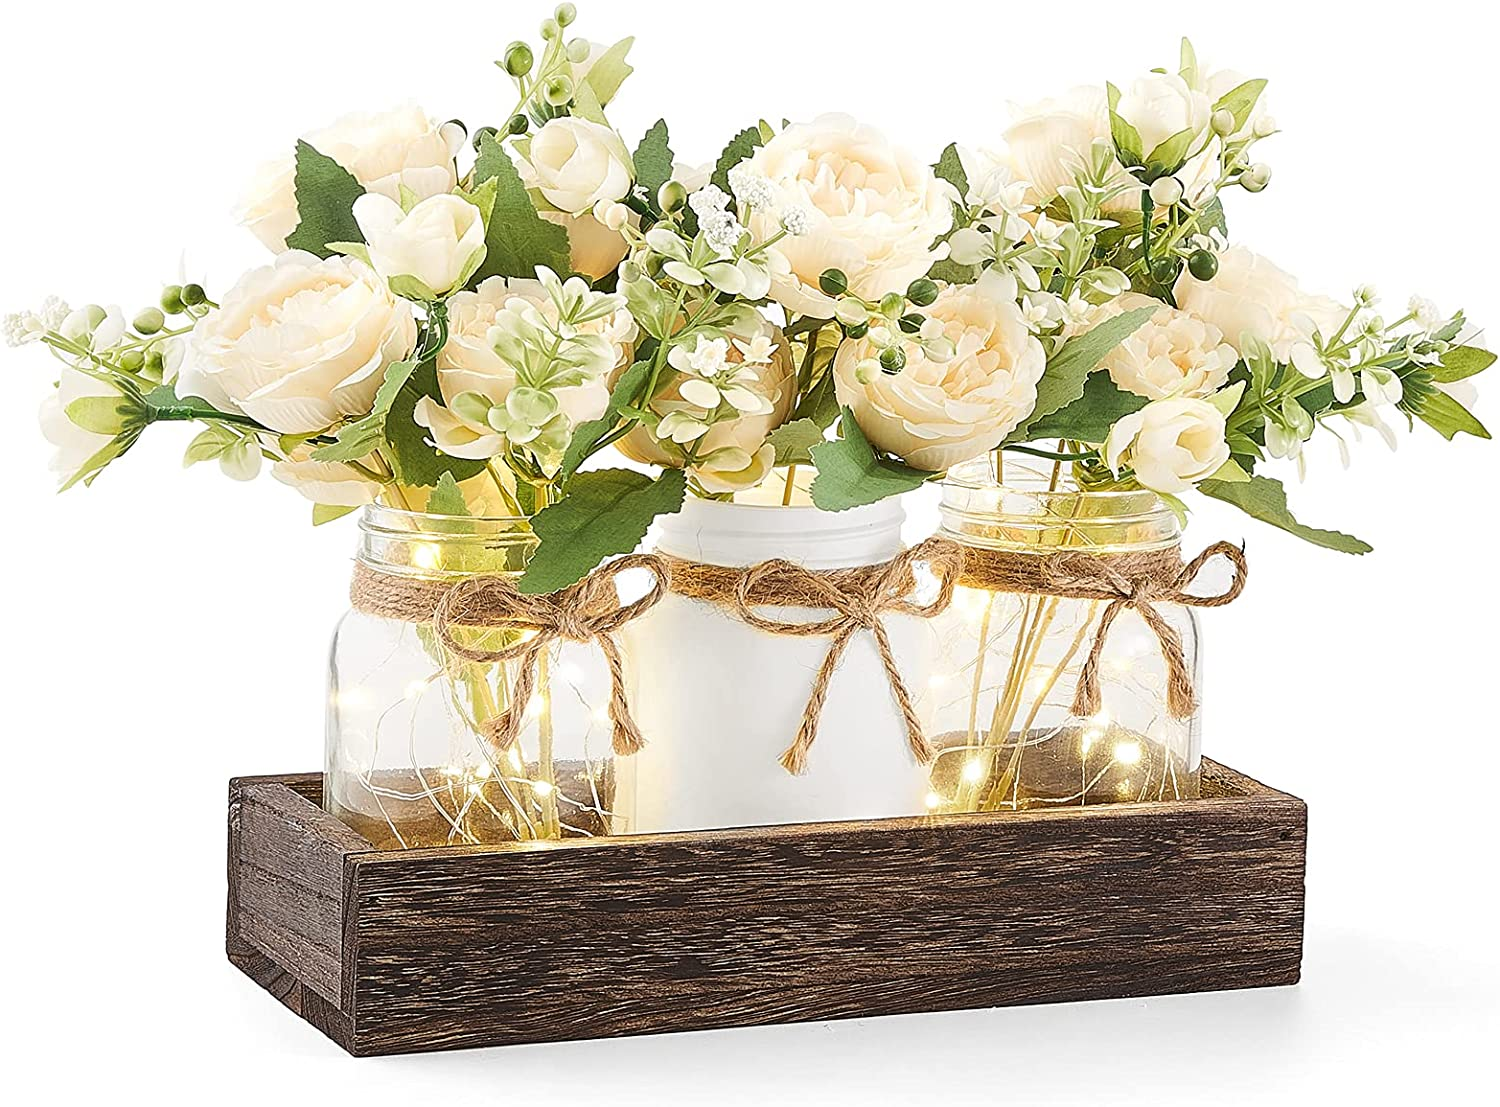 Mkono Mason Jar Lights Centerpiece Table Decorations for Dining Room Farmhouse Coffee Table Decor Rustic Wood Tray with 3 Painted Jars Flowers Table Centerpieces Decor for Kitchen Living Dining Room